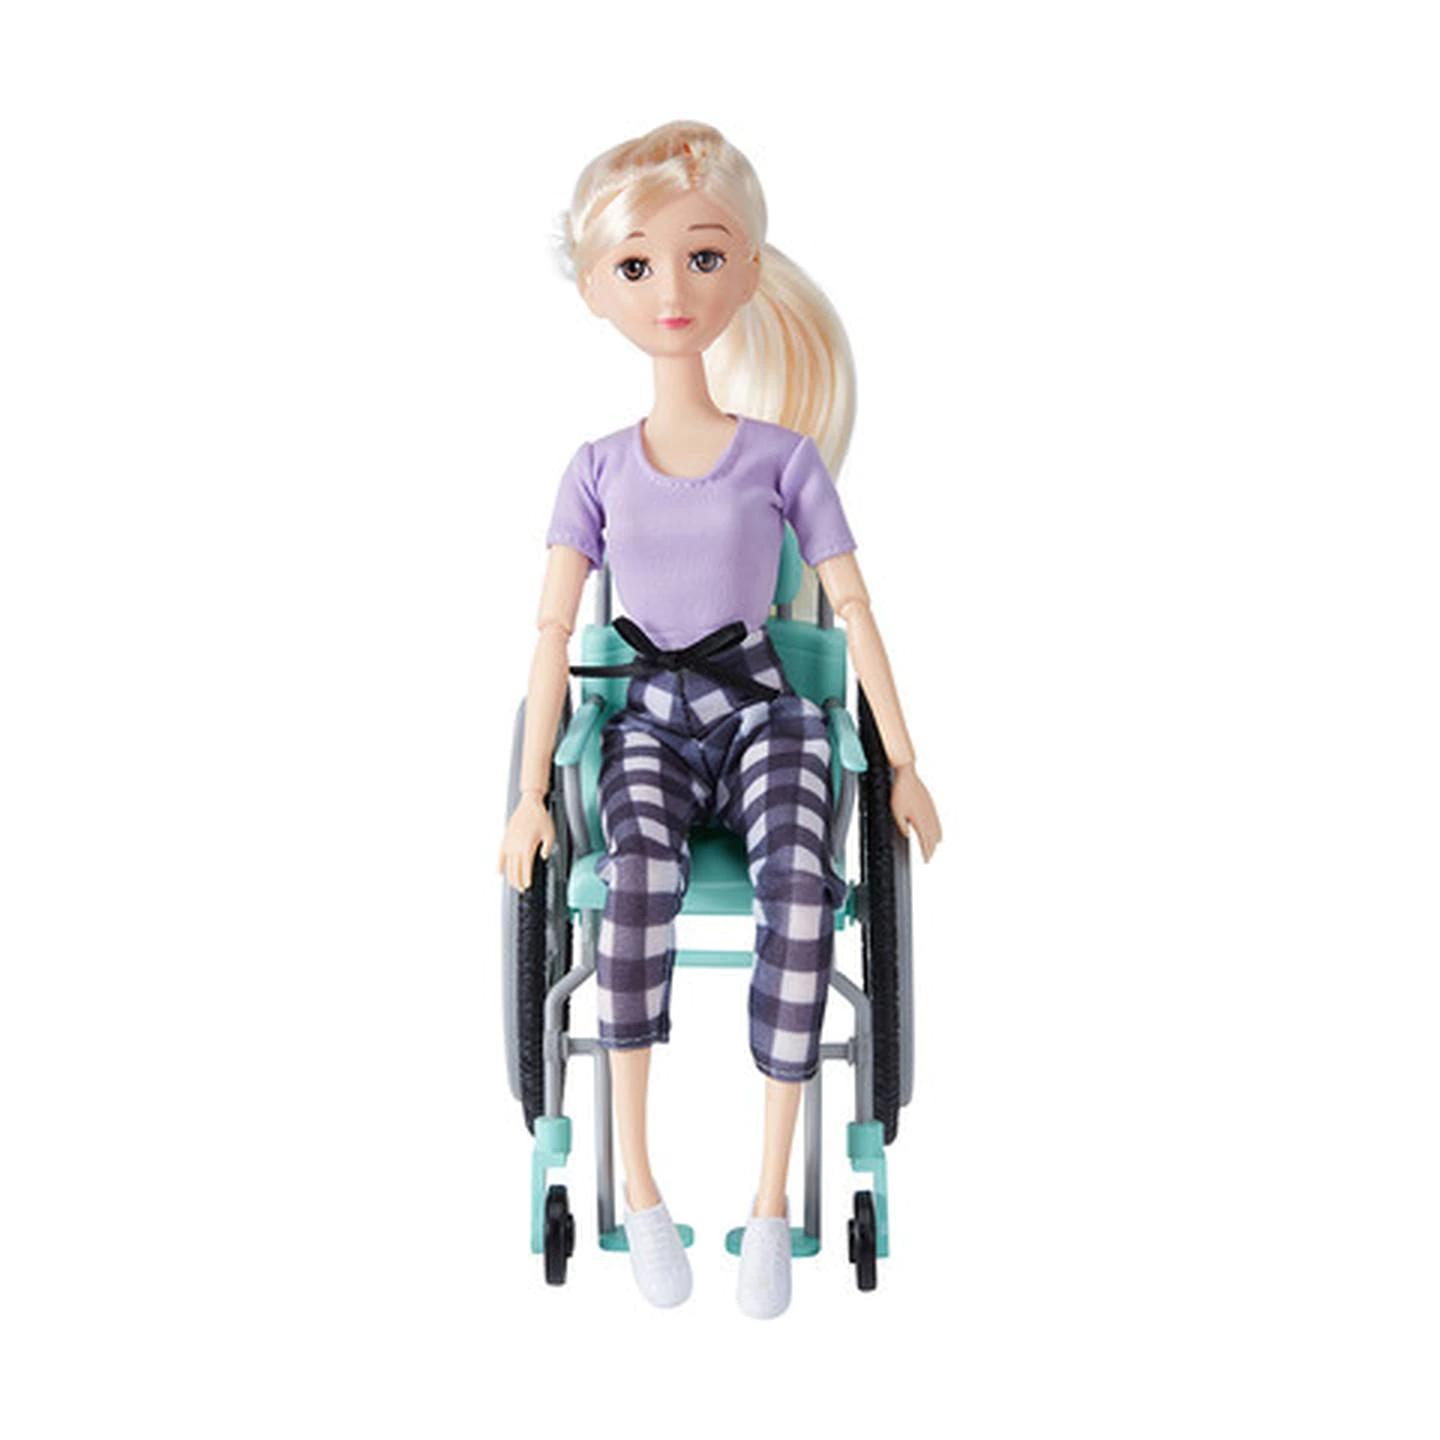 A doll of a girl in a wheelchair can also be purchased in Kmart stores across New Zealand. Photo:...